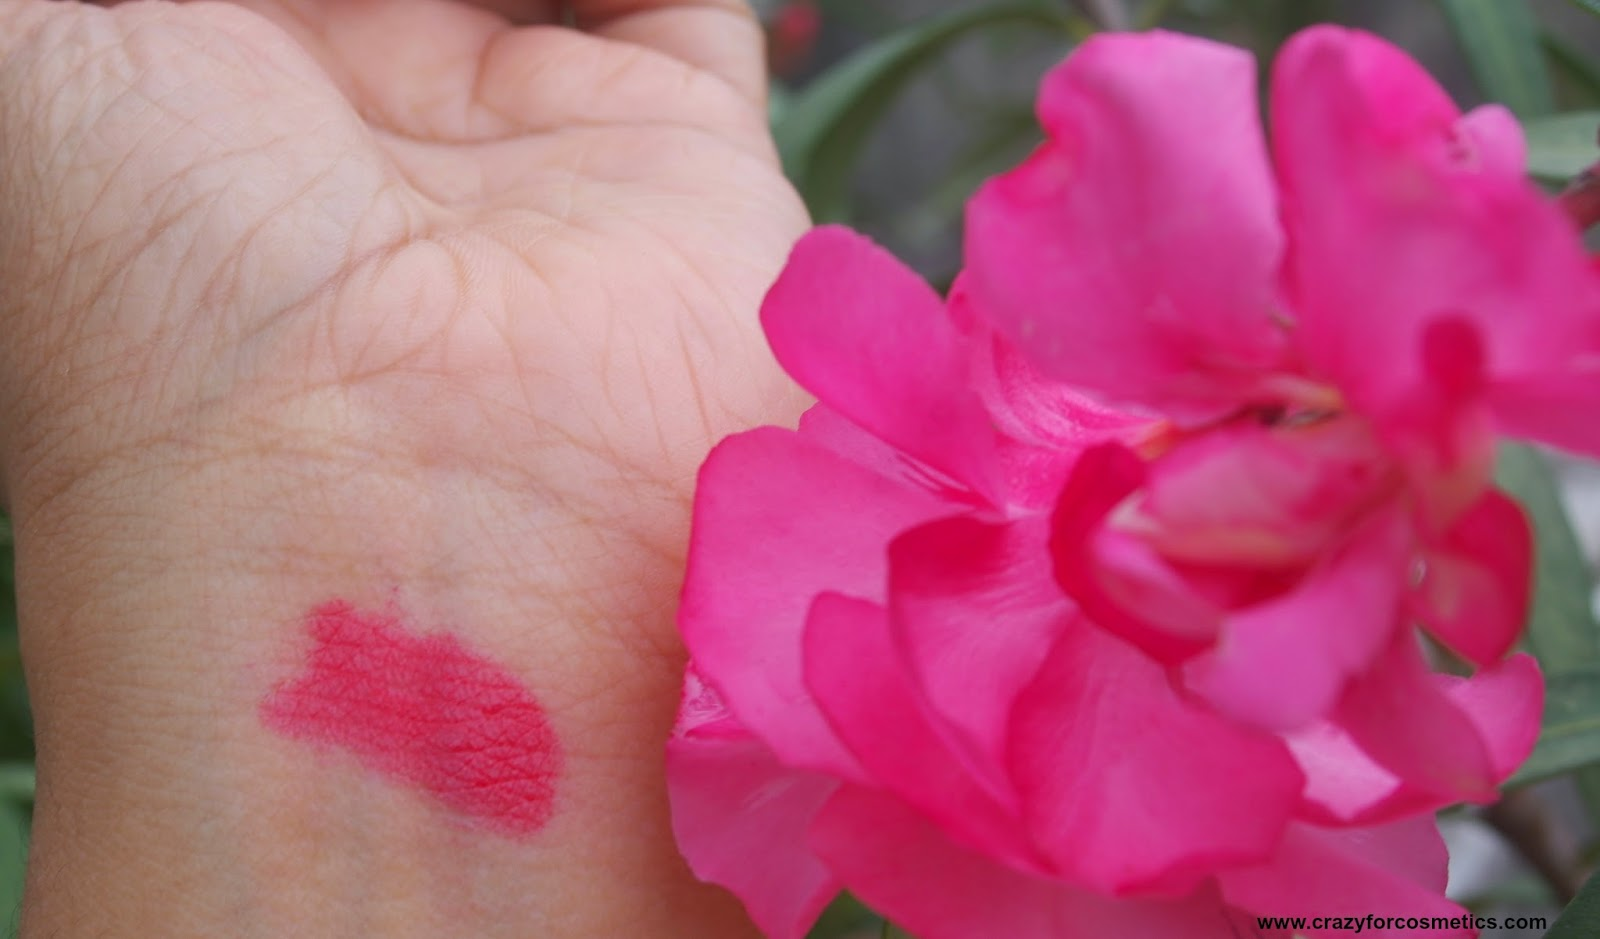 Bourjois Paris Color Boost Lip Crayon in Red Sunrise Swatches